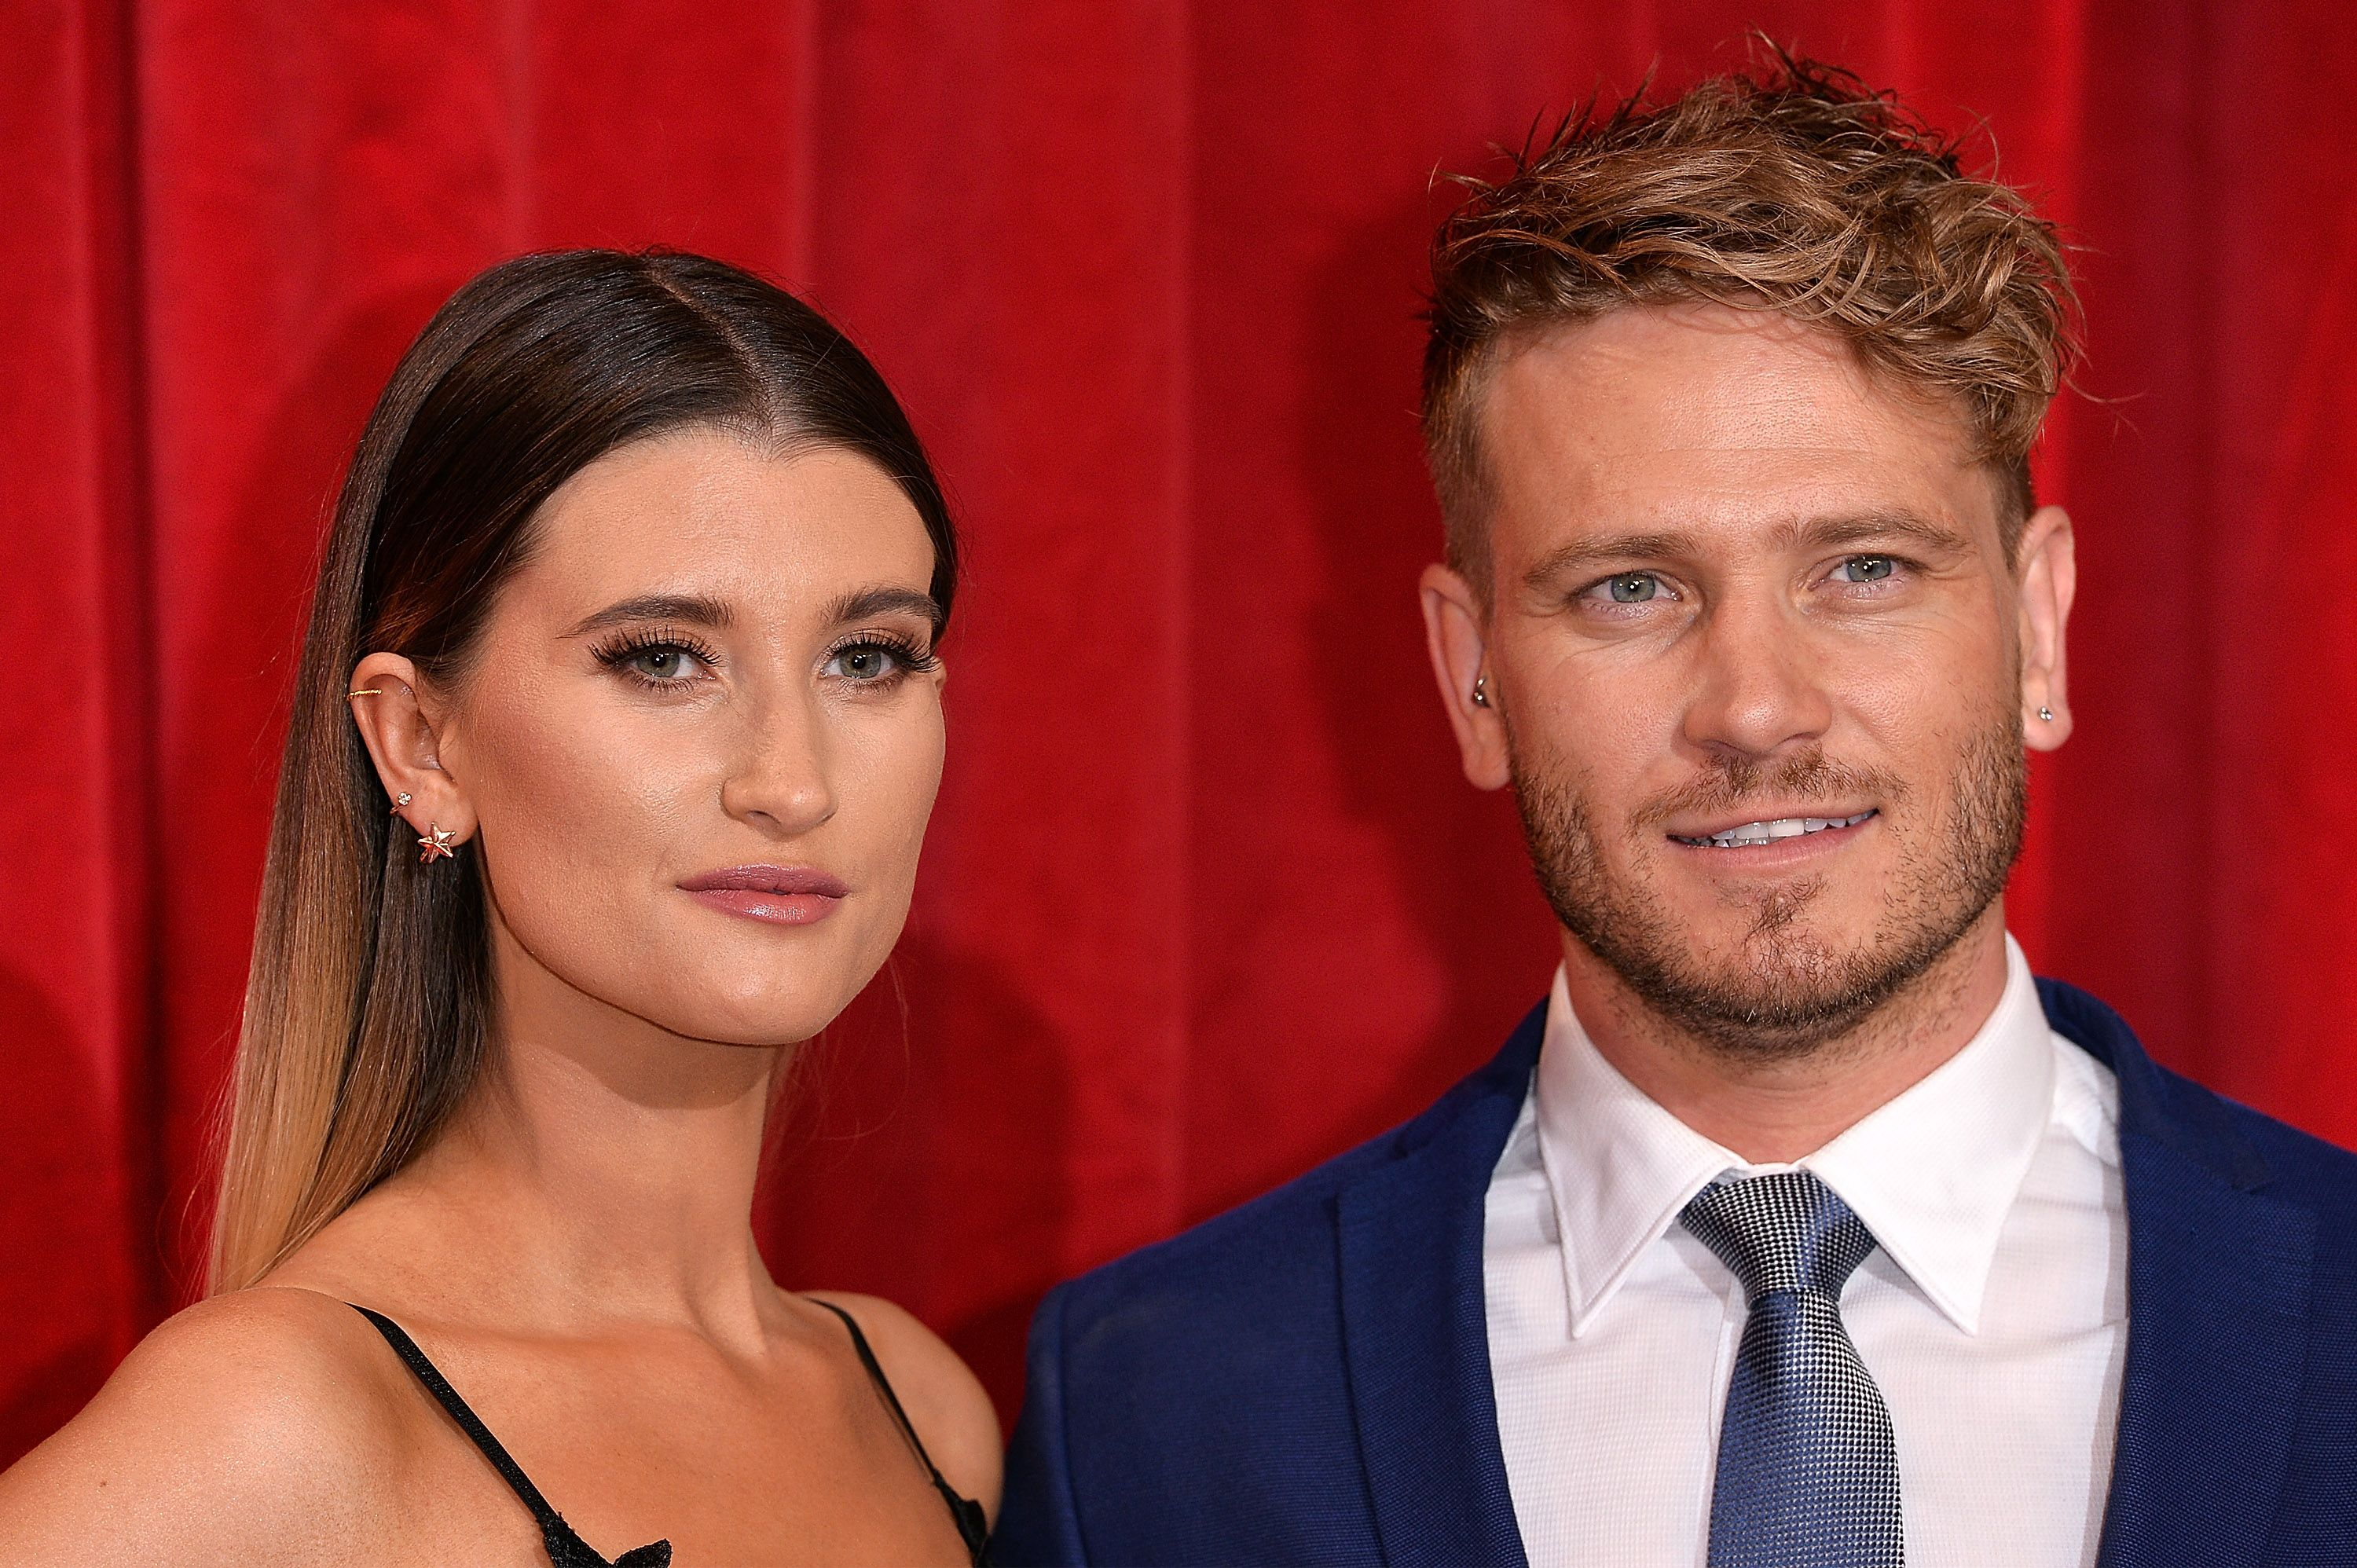 Emmerdale star Charley Webb isn't ruling out having any more children with husband Matthew Wolfenden